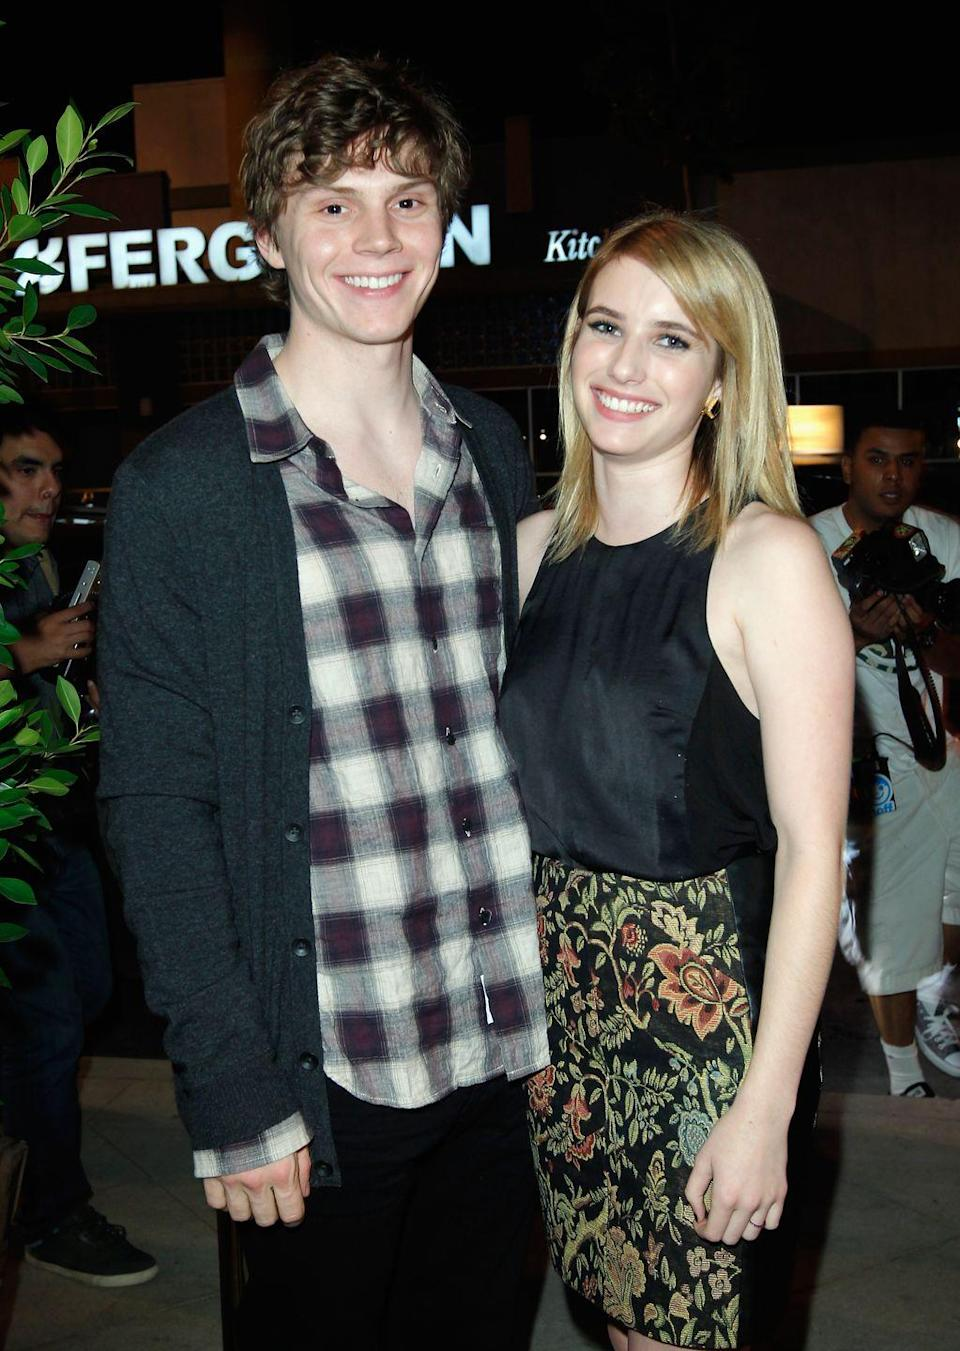 """<p>The on-and-off pair started dating after meeting on the set of their 2012 film <em>Adult World</em><span class=""""redactor-invisible-space"""">. Peters proposed over the holidays in 2013 but they broke things off in June 2015. <a href=""""http://www.usmagazine.com/celebrity-news/news/emma-roberts-evan-peters-are-engaged-again-spotted-kissing-w452415"""" rel=""""nofollow noopener"""" target=""""_blank"""" data-ylk=""""slk:They reportedly got back together"""" class=""""link rapid-noclick-resp"""">They reportedly got back together</a> in November 2016, before splitting once more <a href=""""https://people.com/movies/emma-roberts-evan-peters-call-off-engagement-report/"""" rel=""""nofollow noopener"""" target=""""_blank"""" data-ylk=""""slk:in March 2019"""" class=""""link rapid-noclick-resp"""">in March 2019</a>.</span></p>"""